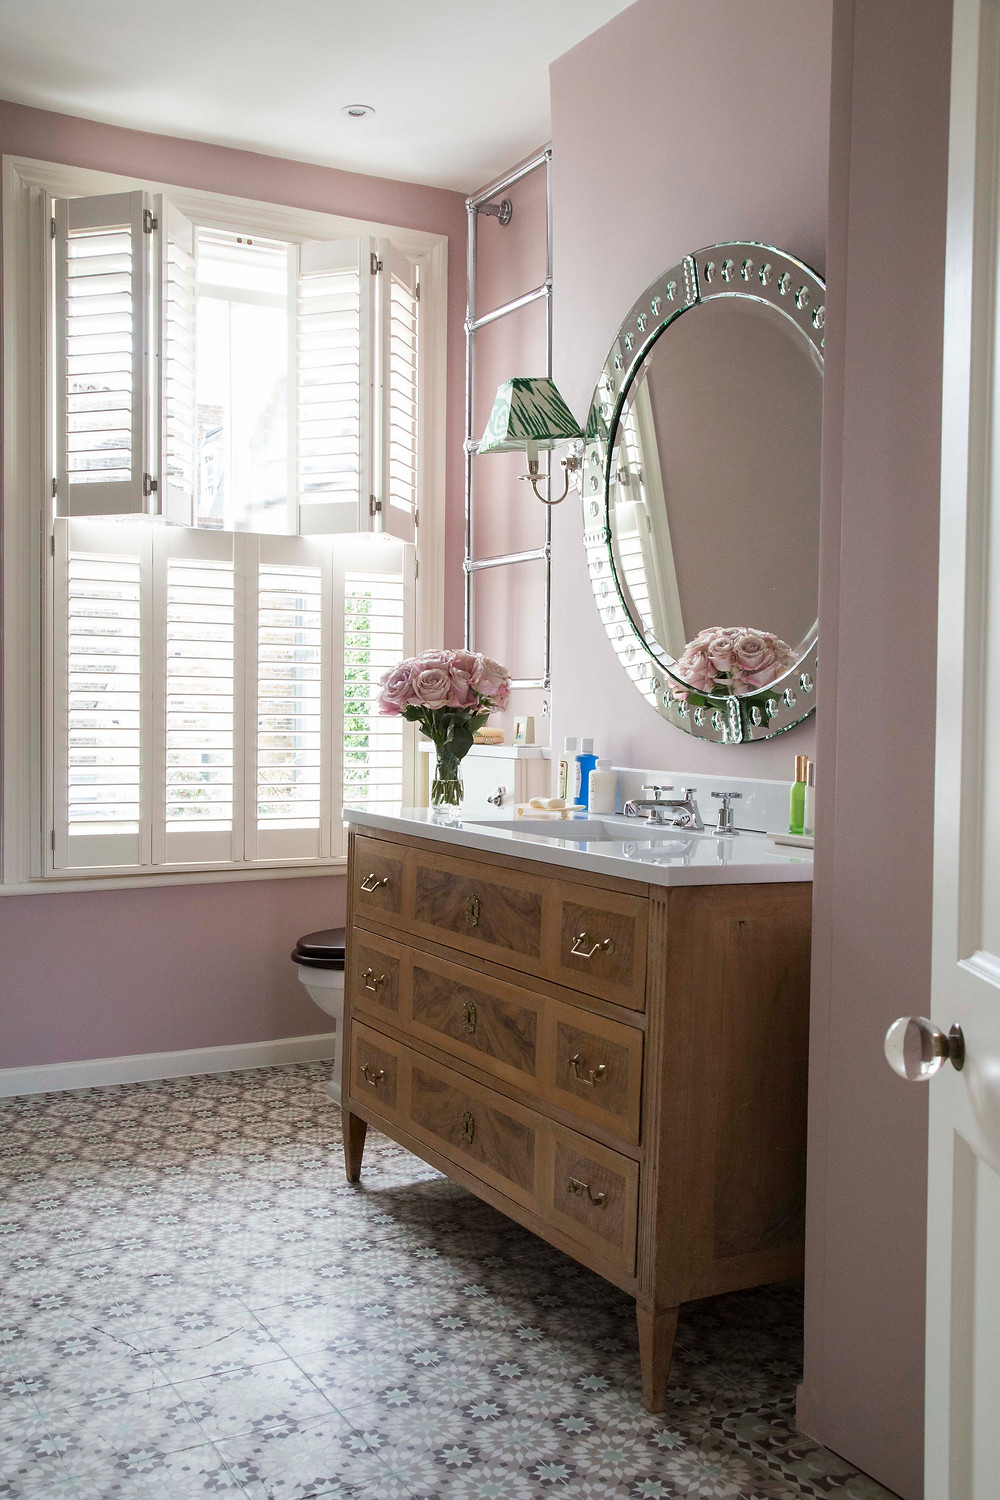 FAMILY BATHROOM in English style with pink walls and large venetian mirror, repurposed chest of drawers